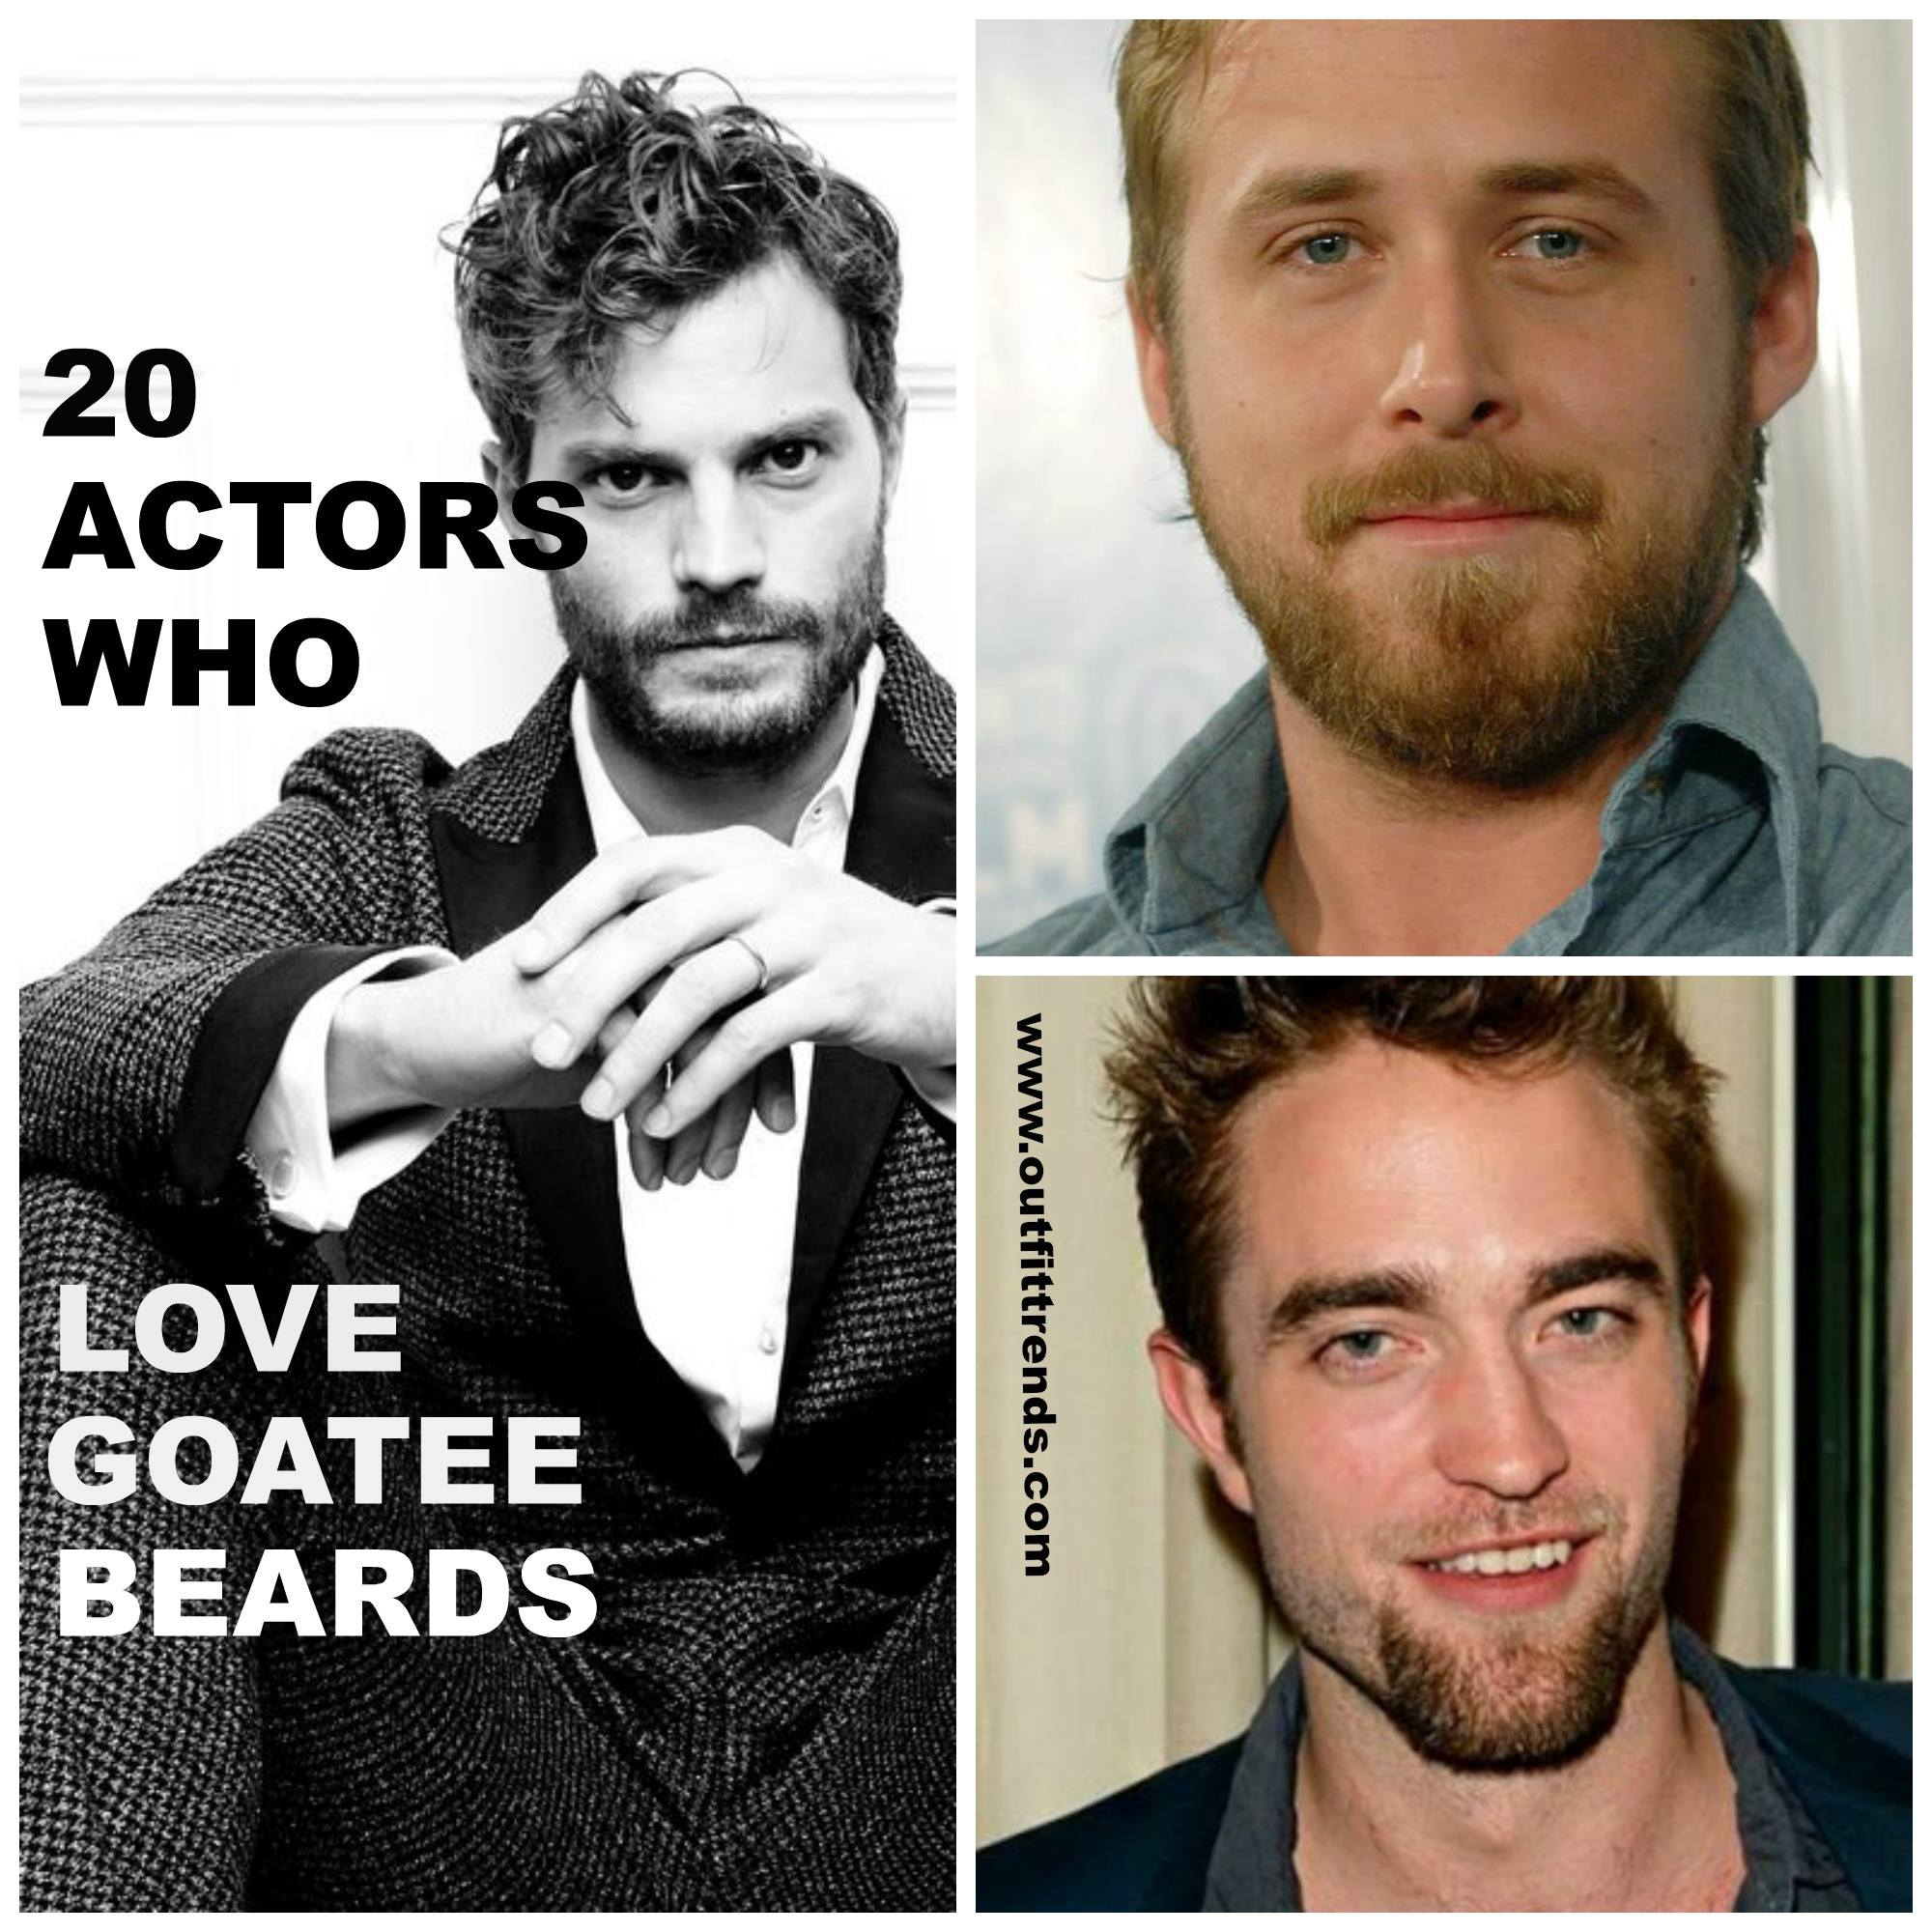 Celebrities Goatee Styles – These 20 Actors Who Love Goatees